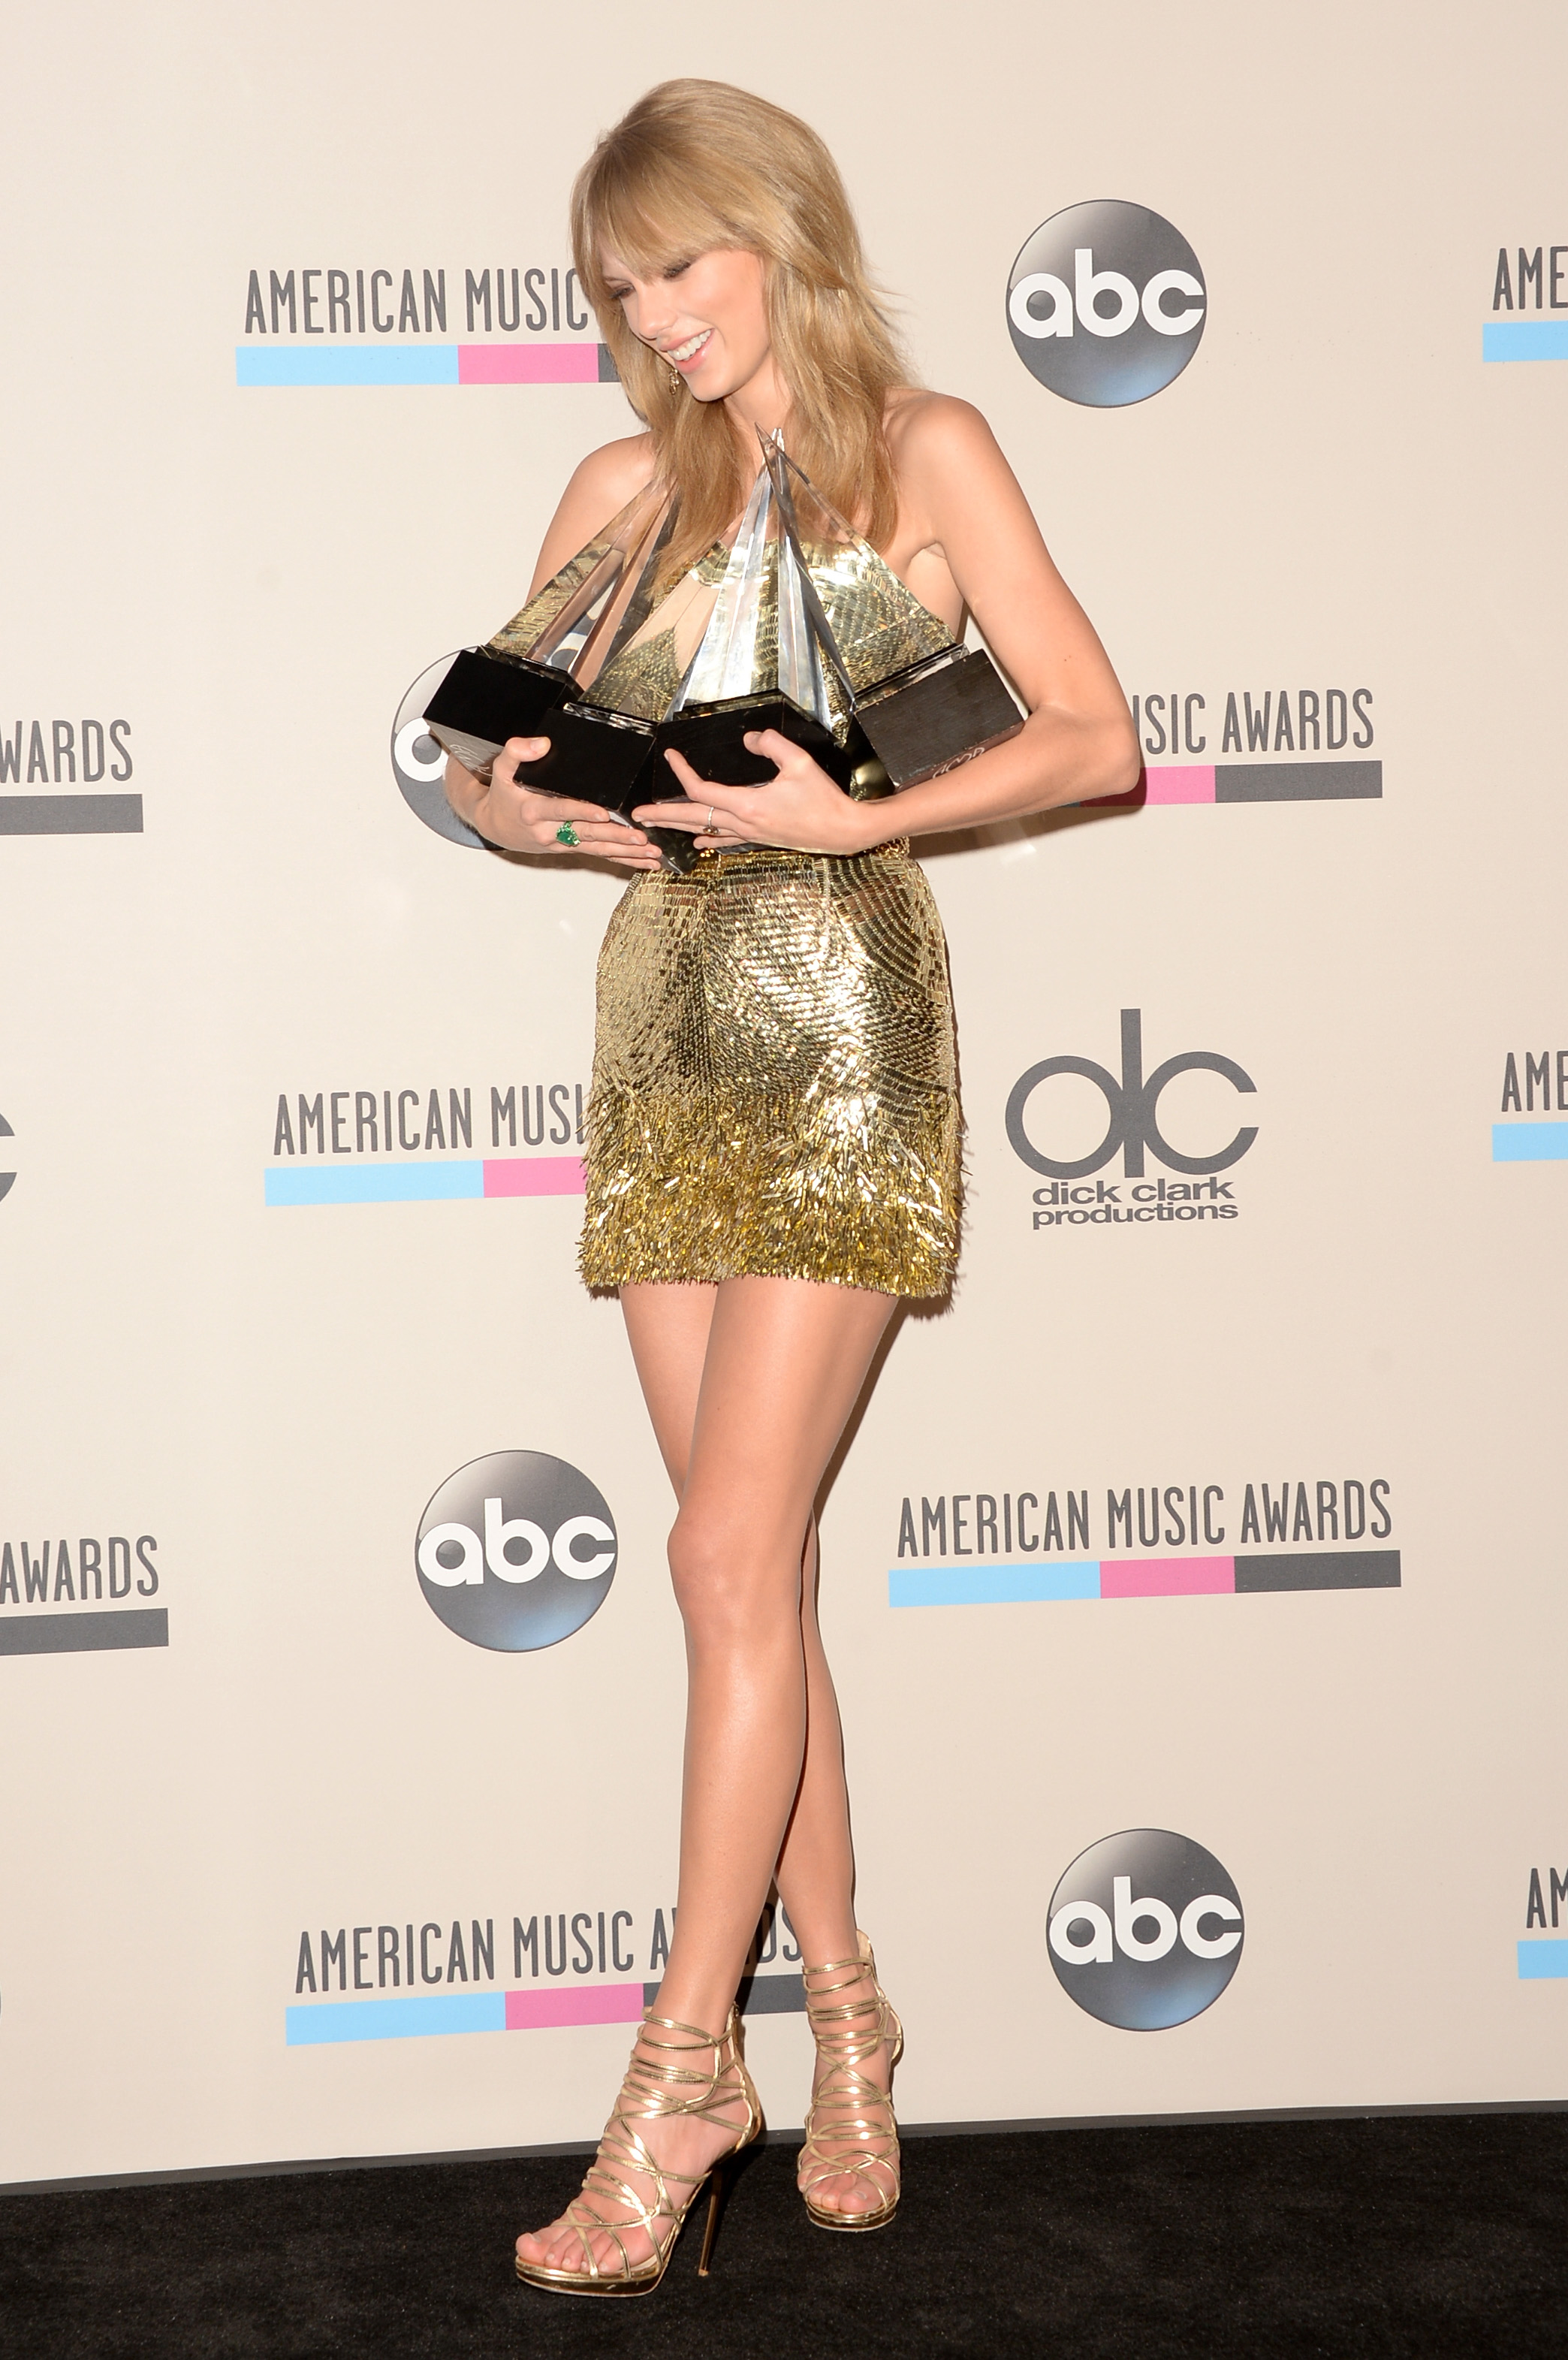 http://taylorpictures.net/albums/app/2013/americanmusicawards/103.jpg